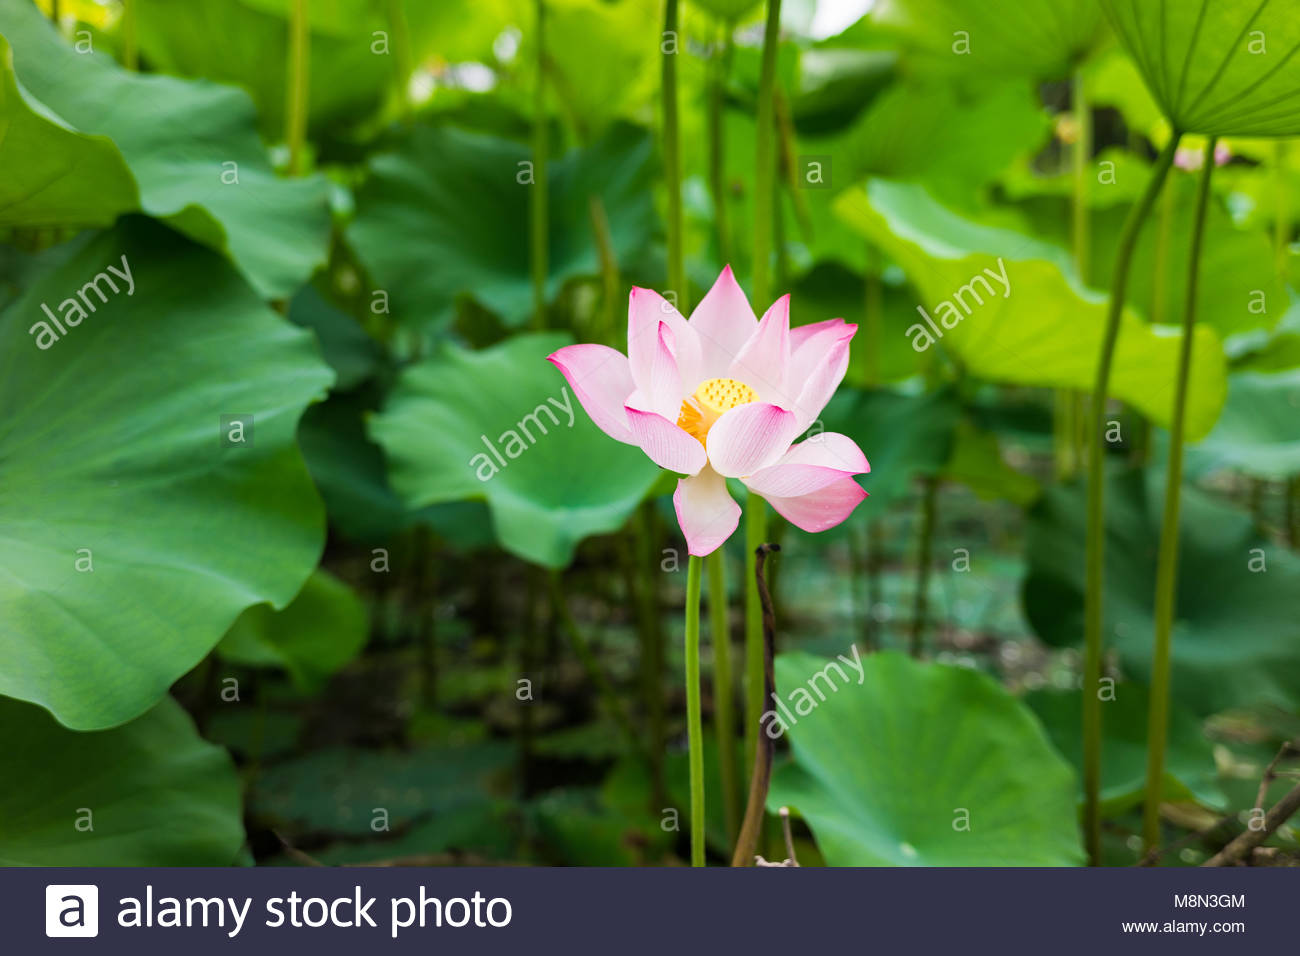 Pink Lotus Flower On Lake With Green Leaves Stock Photo 177484740